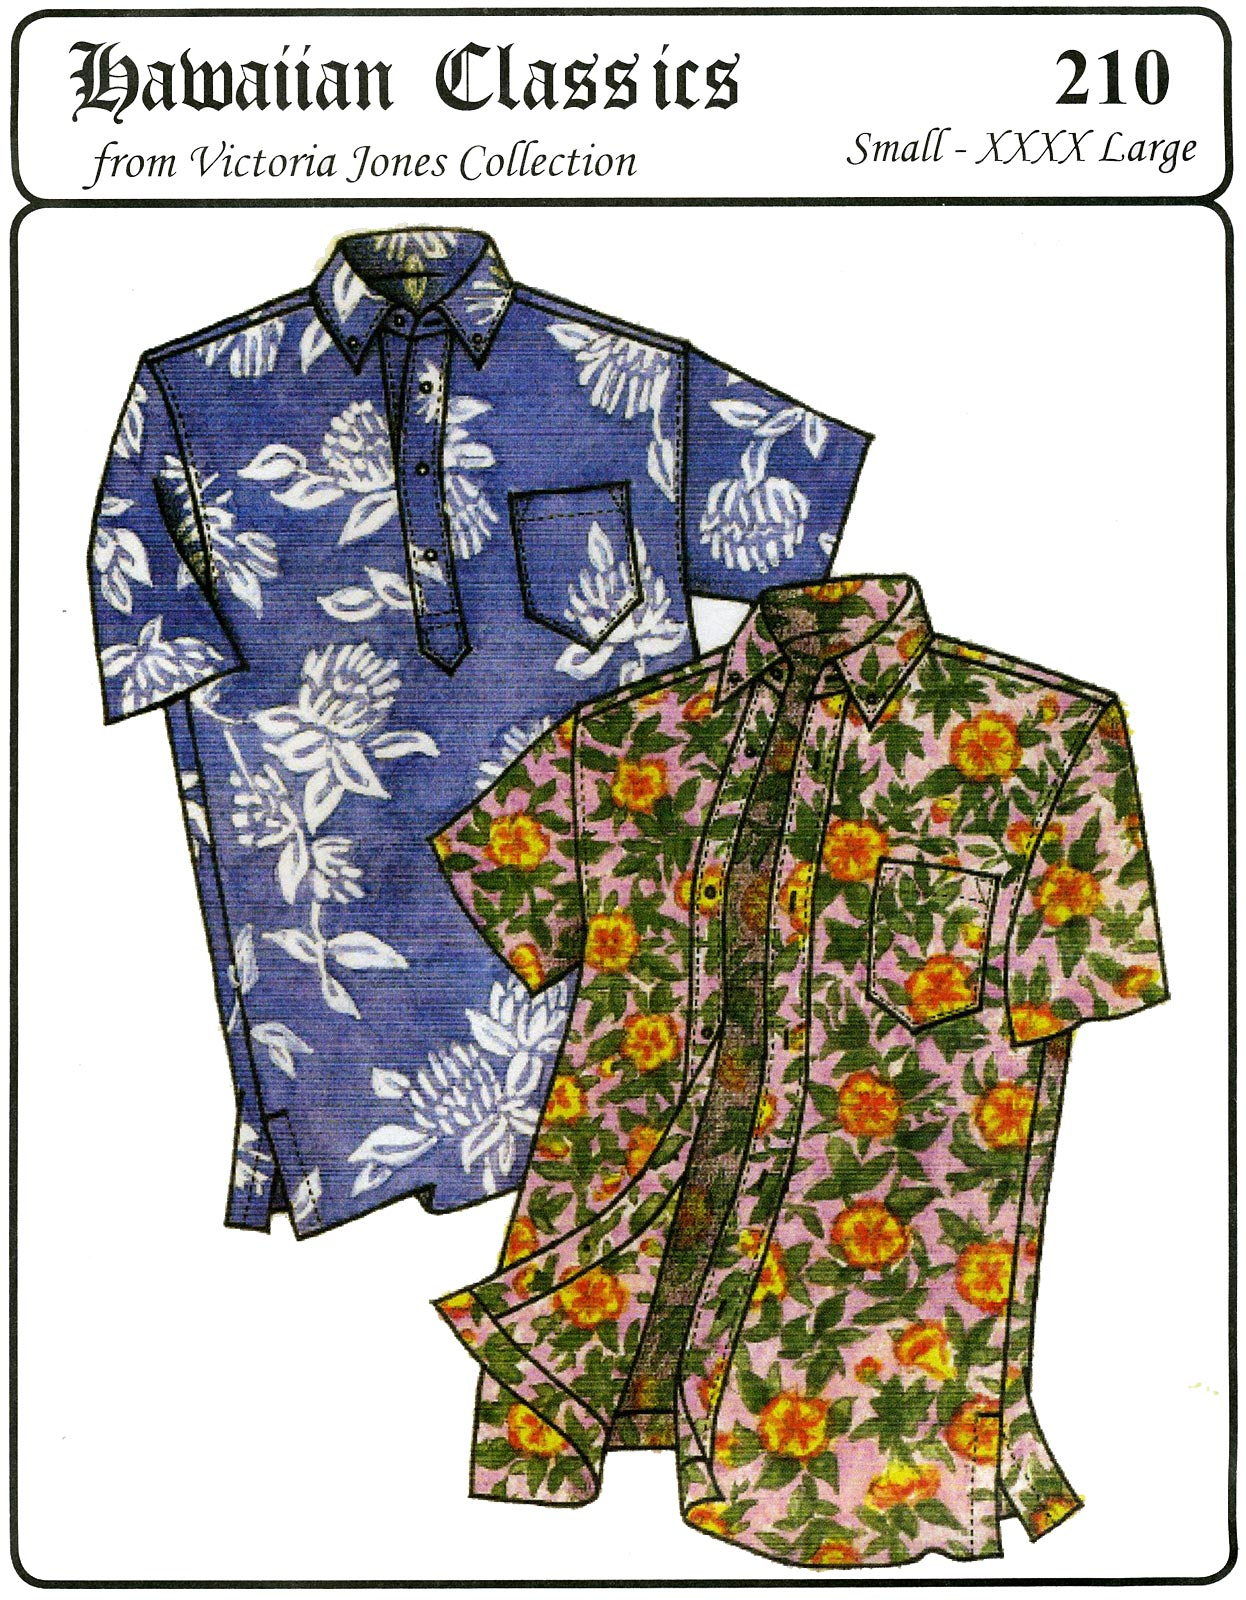 Victoria Jones Collection Men's Classic Hawaiian Businessman's Aloha Shirt 210